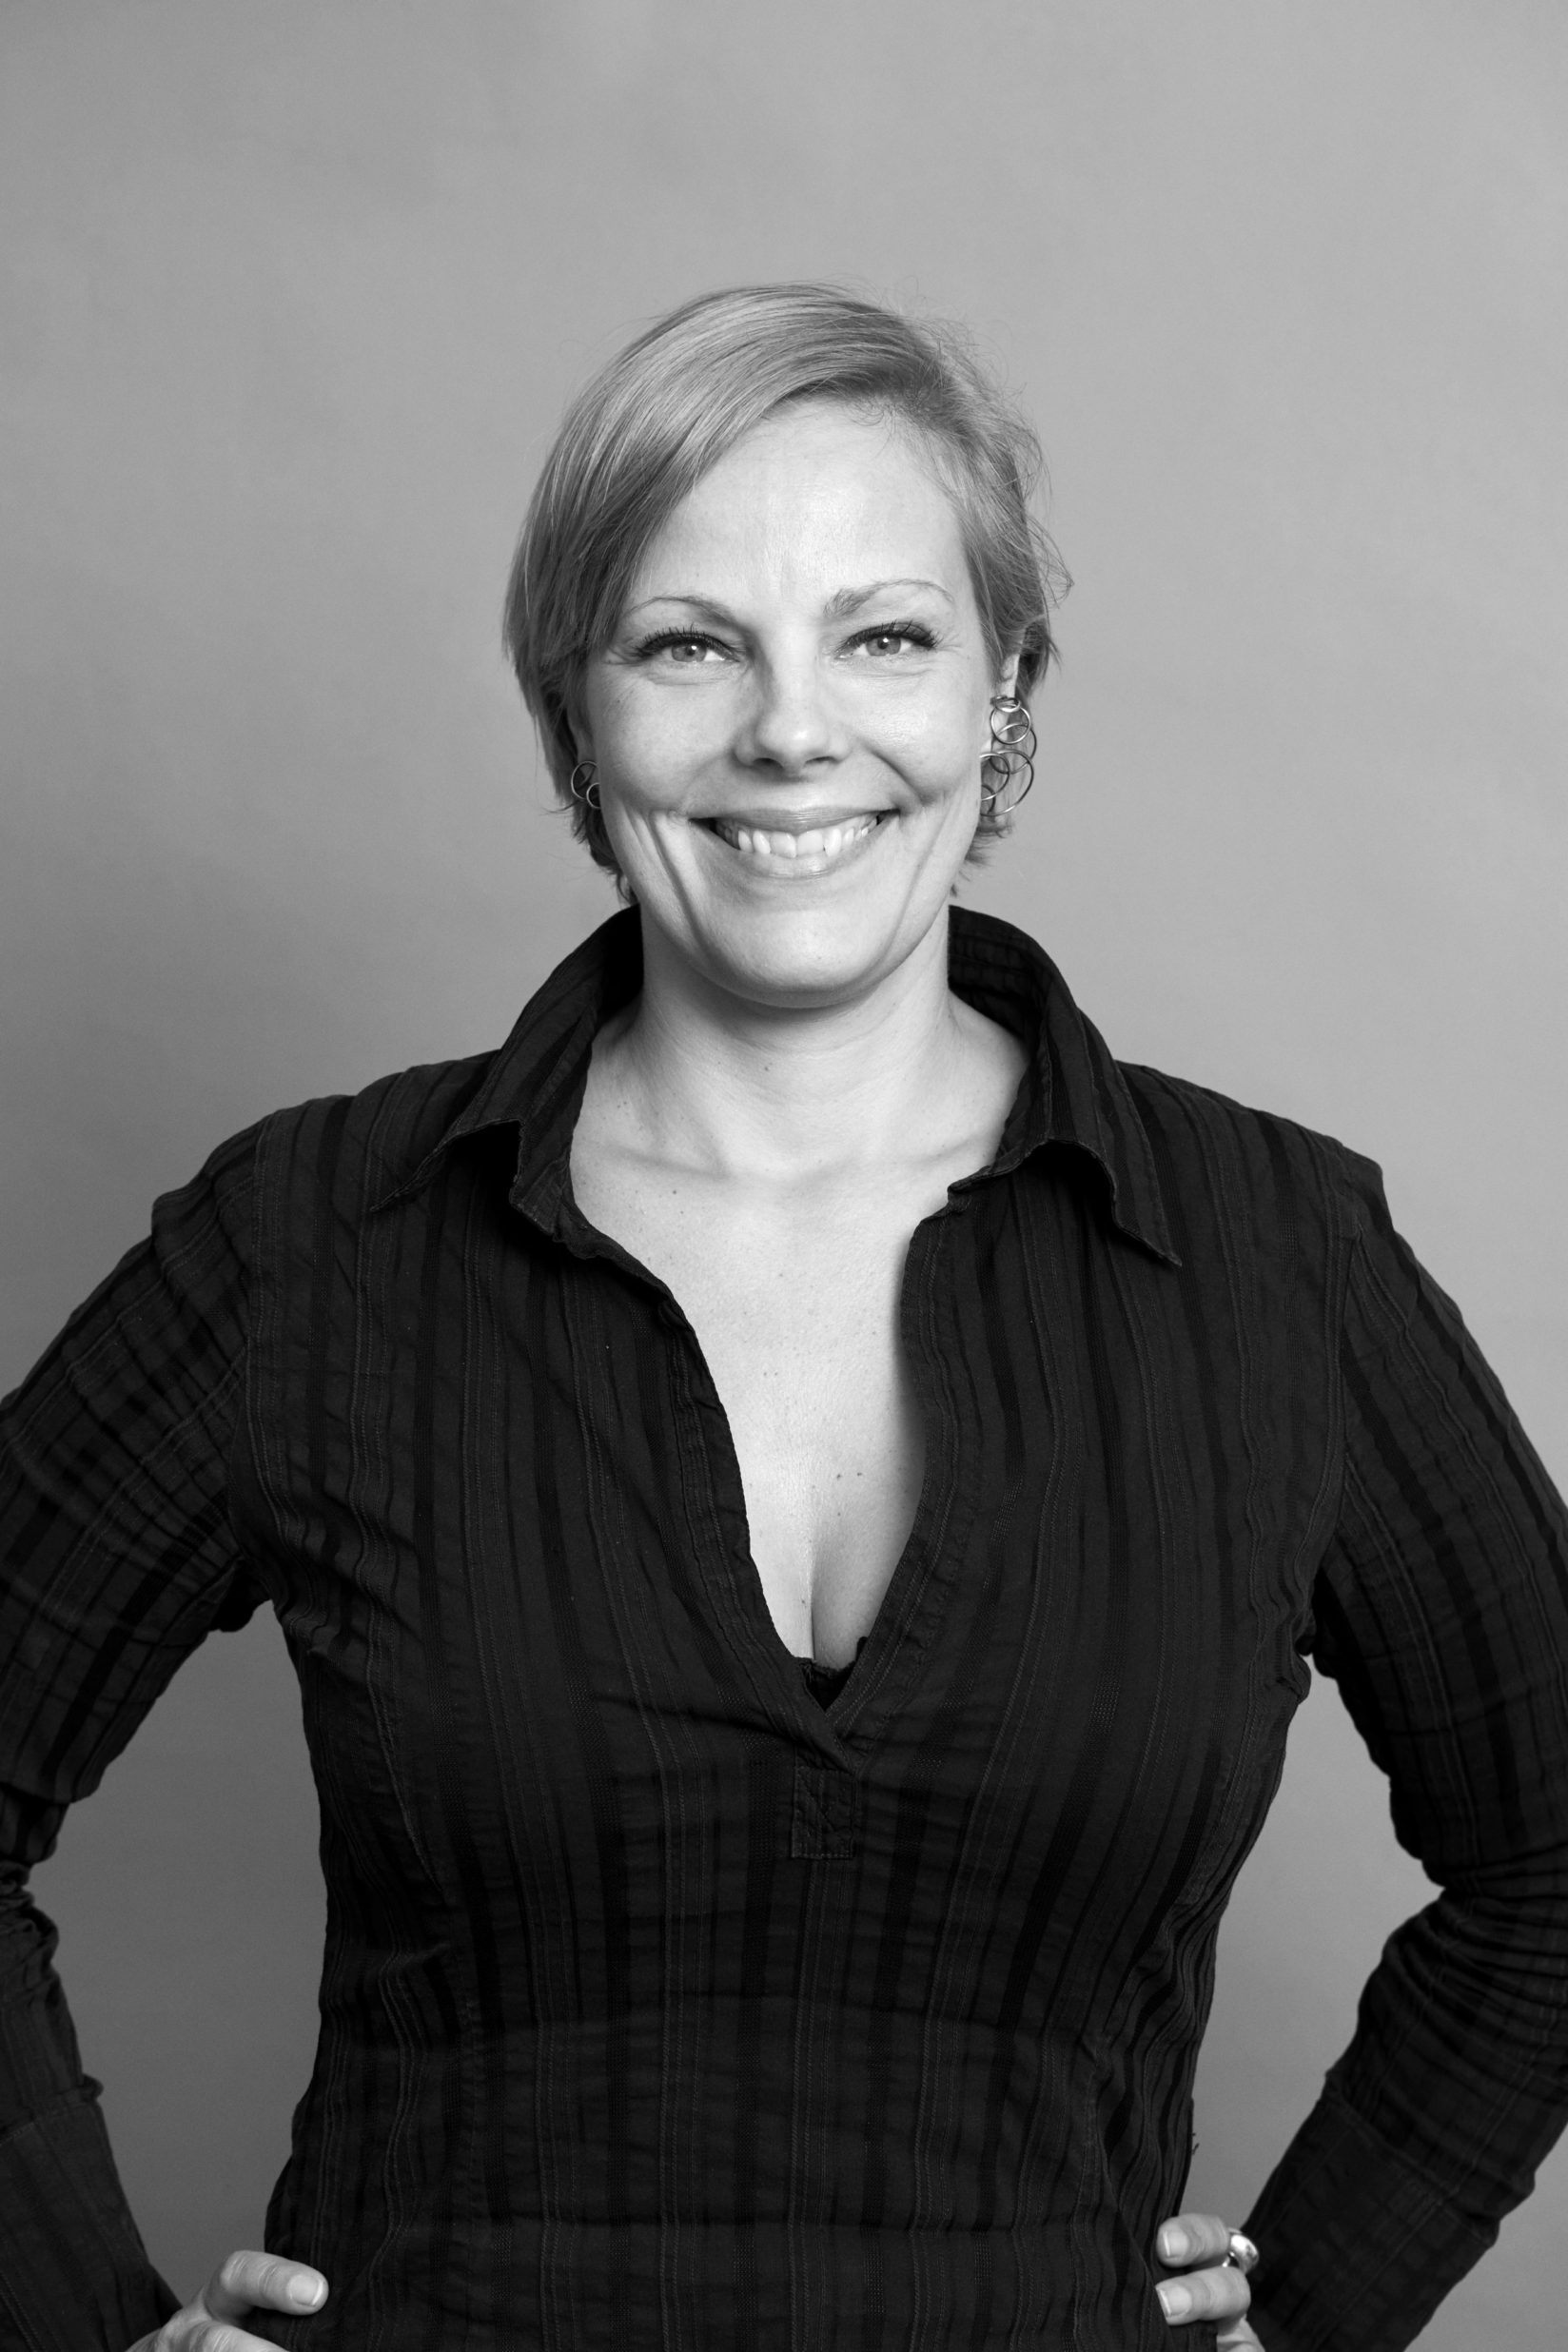 Meet our new Head of Internet Week Denmark: The ambitious and playful pirate queen Louise Overgaard